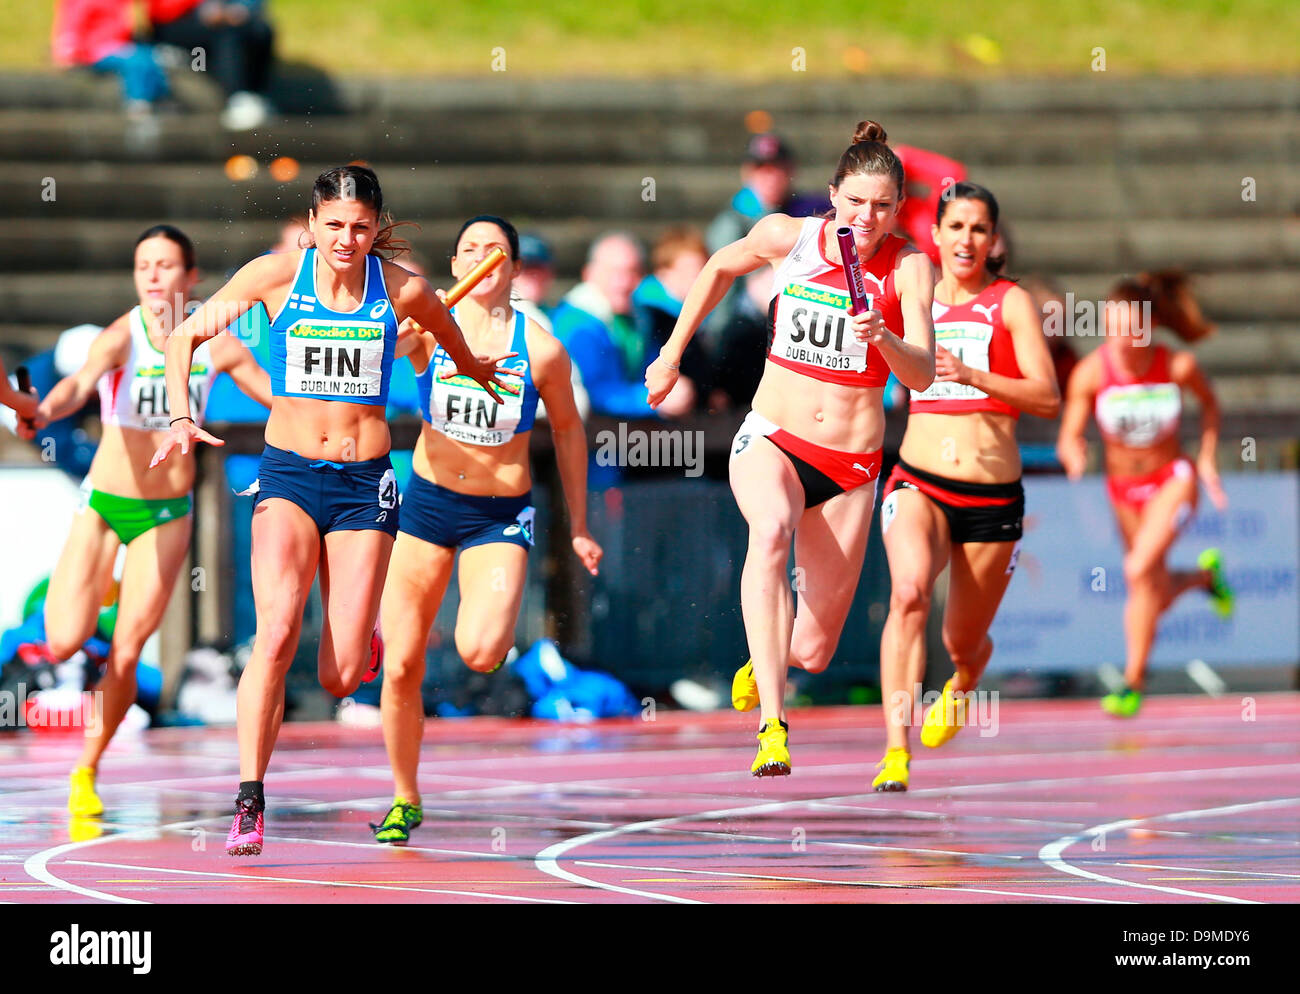 Dublin, Ireland. 22nd June, 2013. The vital handover in the womens 4x100m during the European Athletics Team Championships - Stock Image